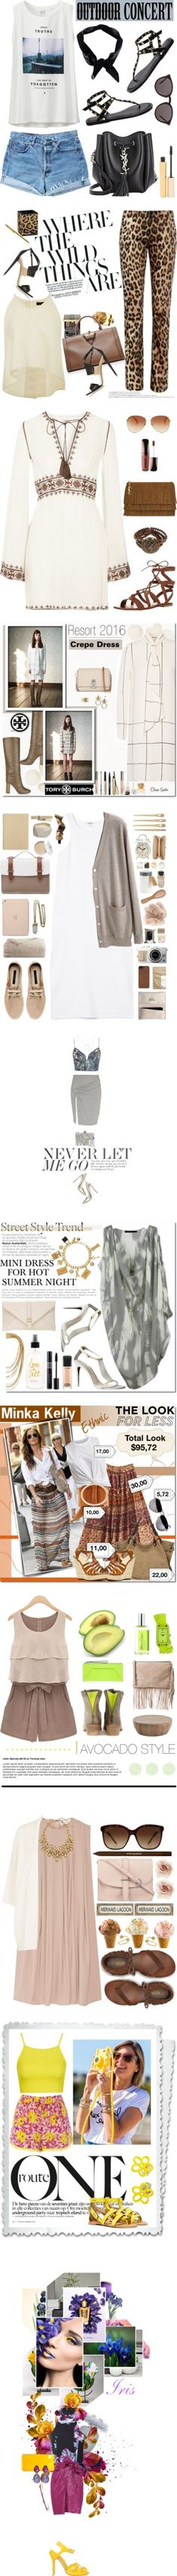 """Top Fashion Sets for Jul 18th, 2015"" by polyvore ❤ liked on Polyvore"